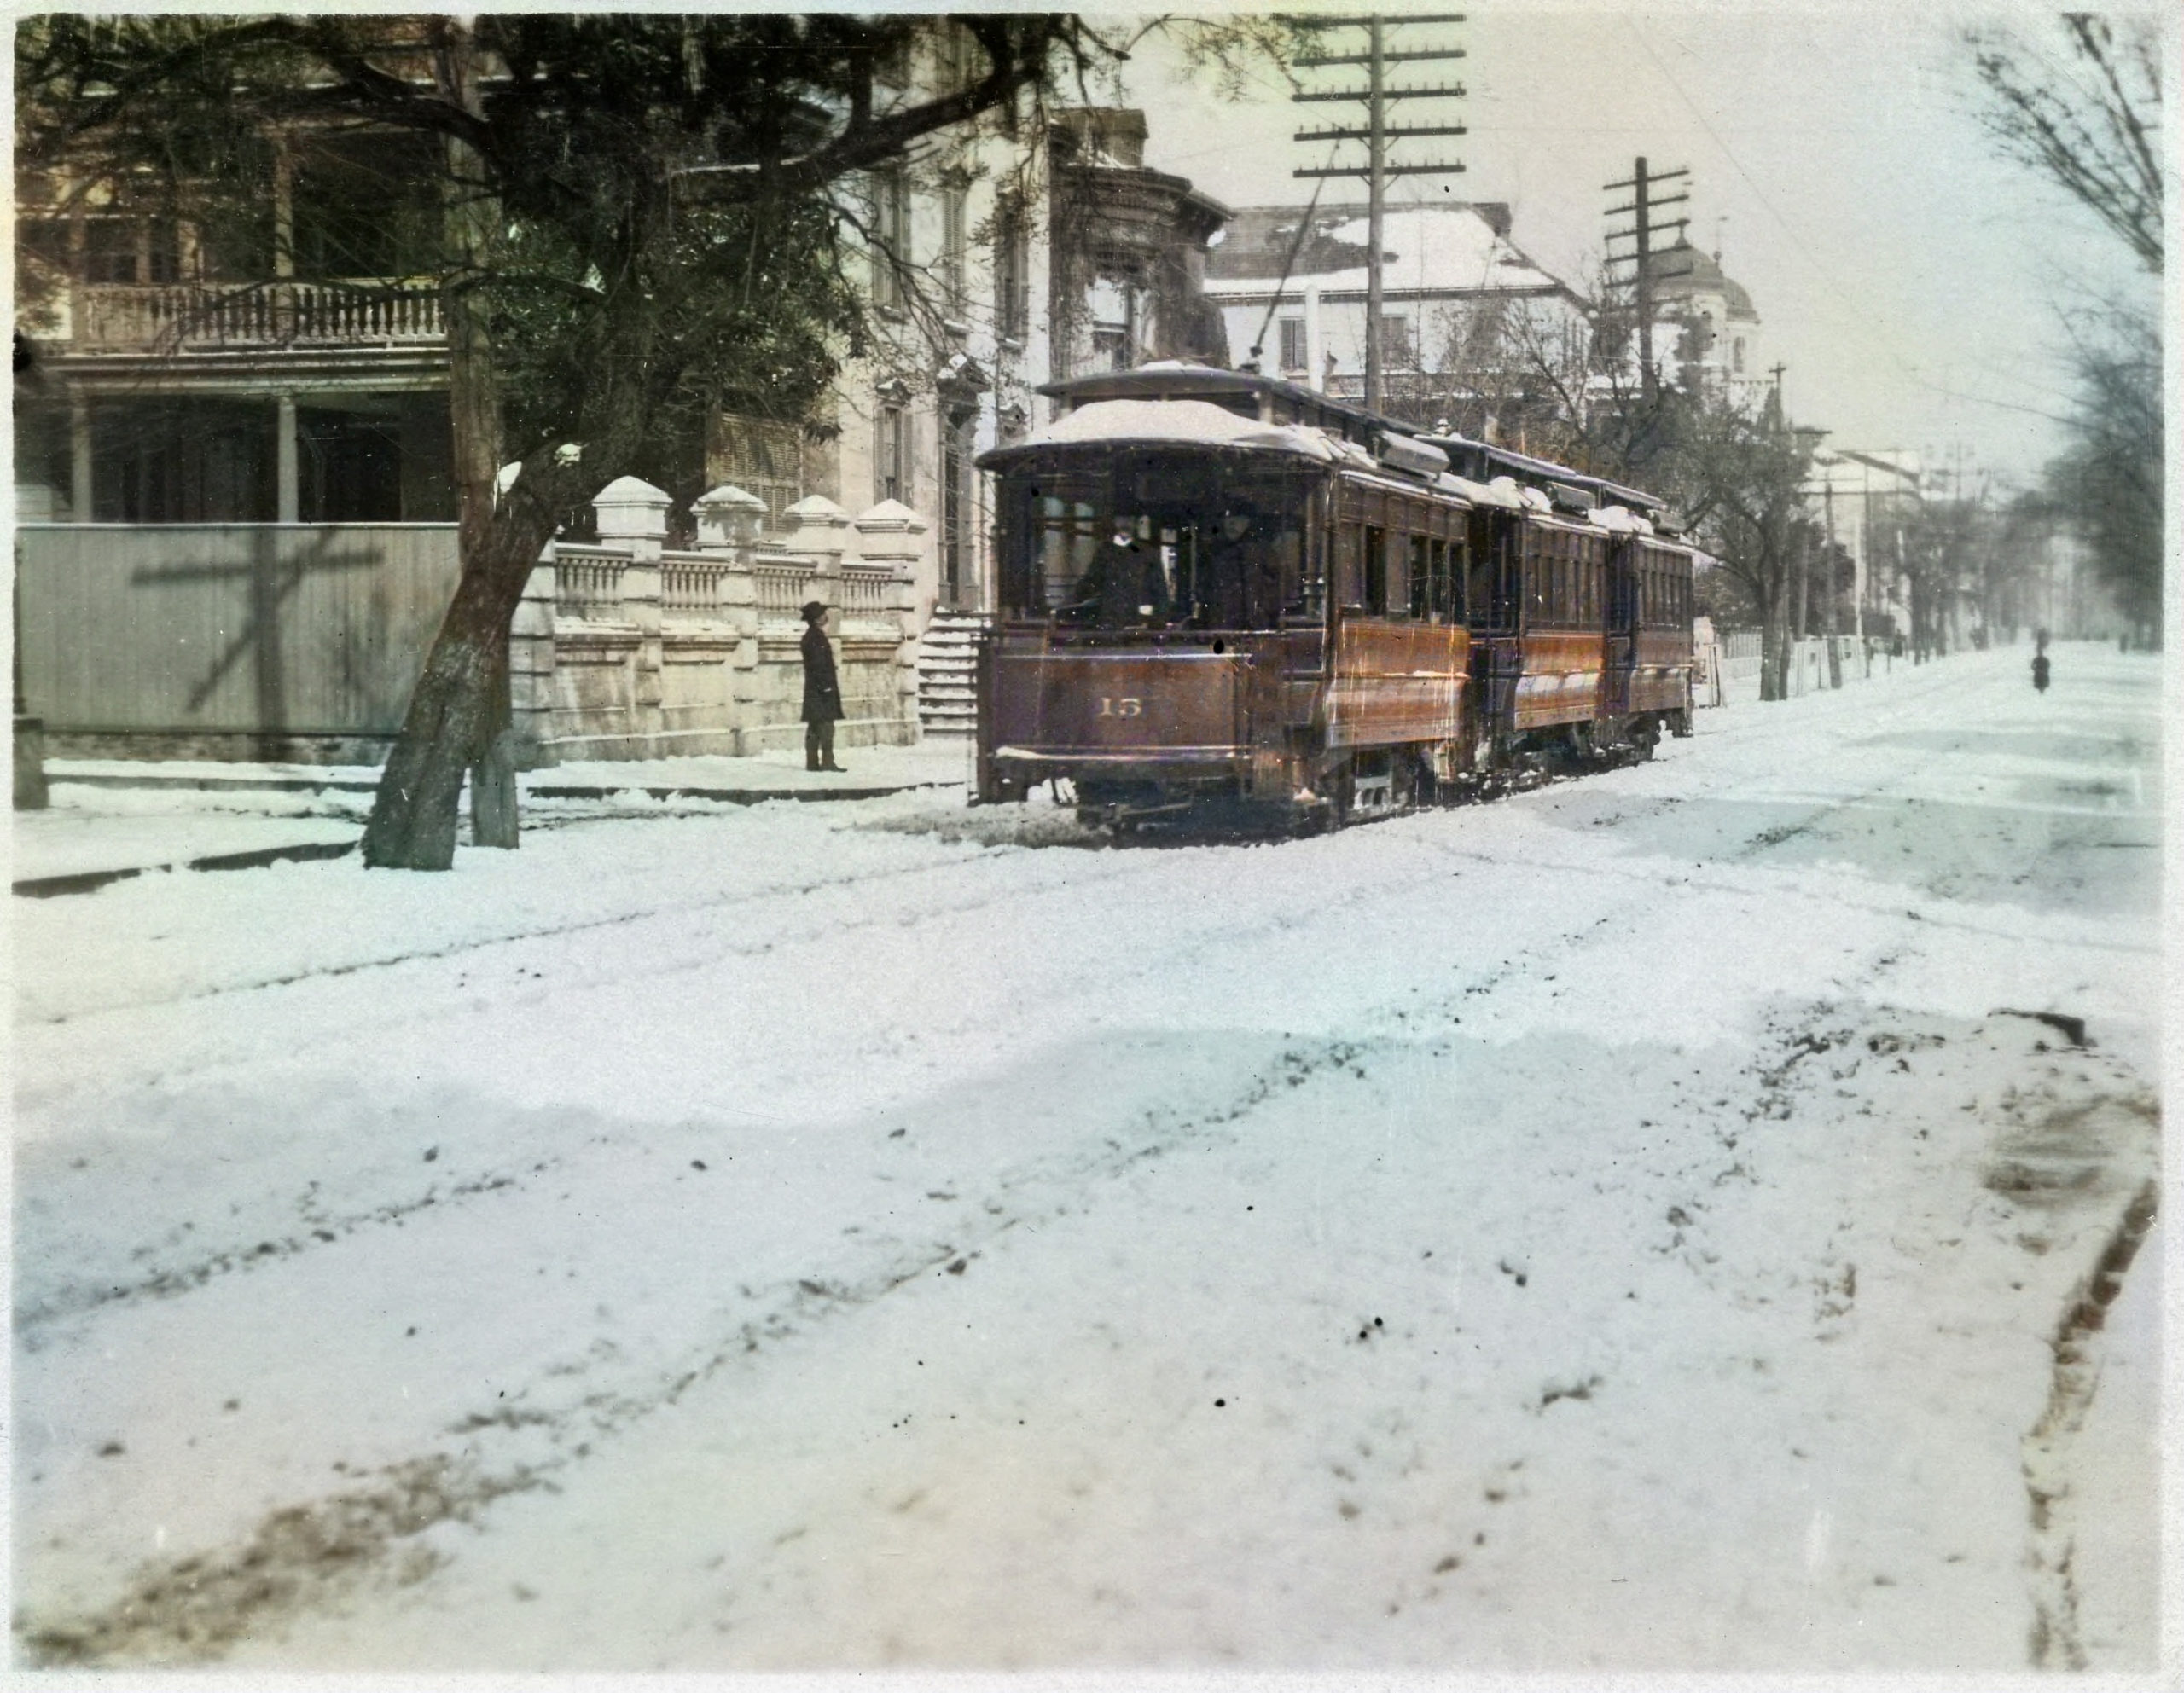 A Winter Wonderland in Color: Snow Scenes in Charleston on view in the Lowcountry Image Gallery